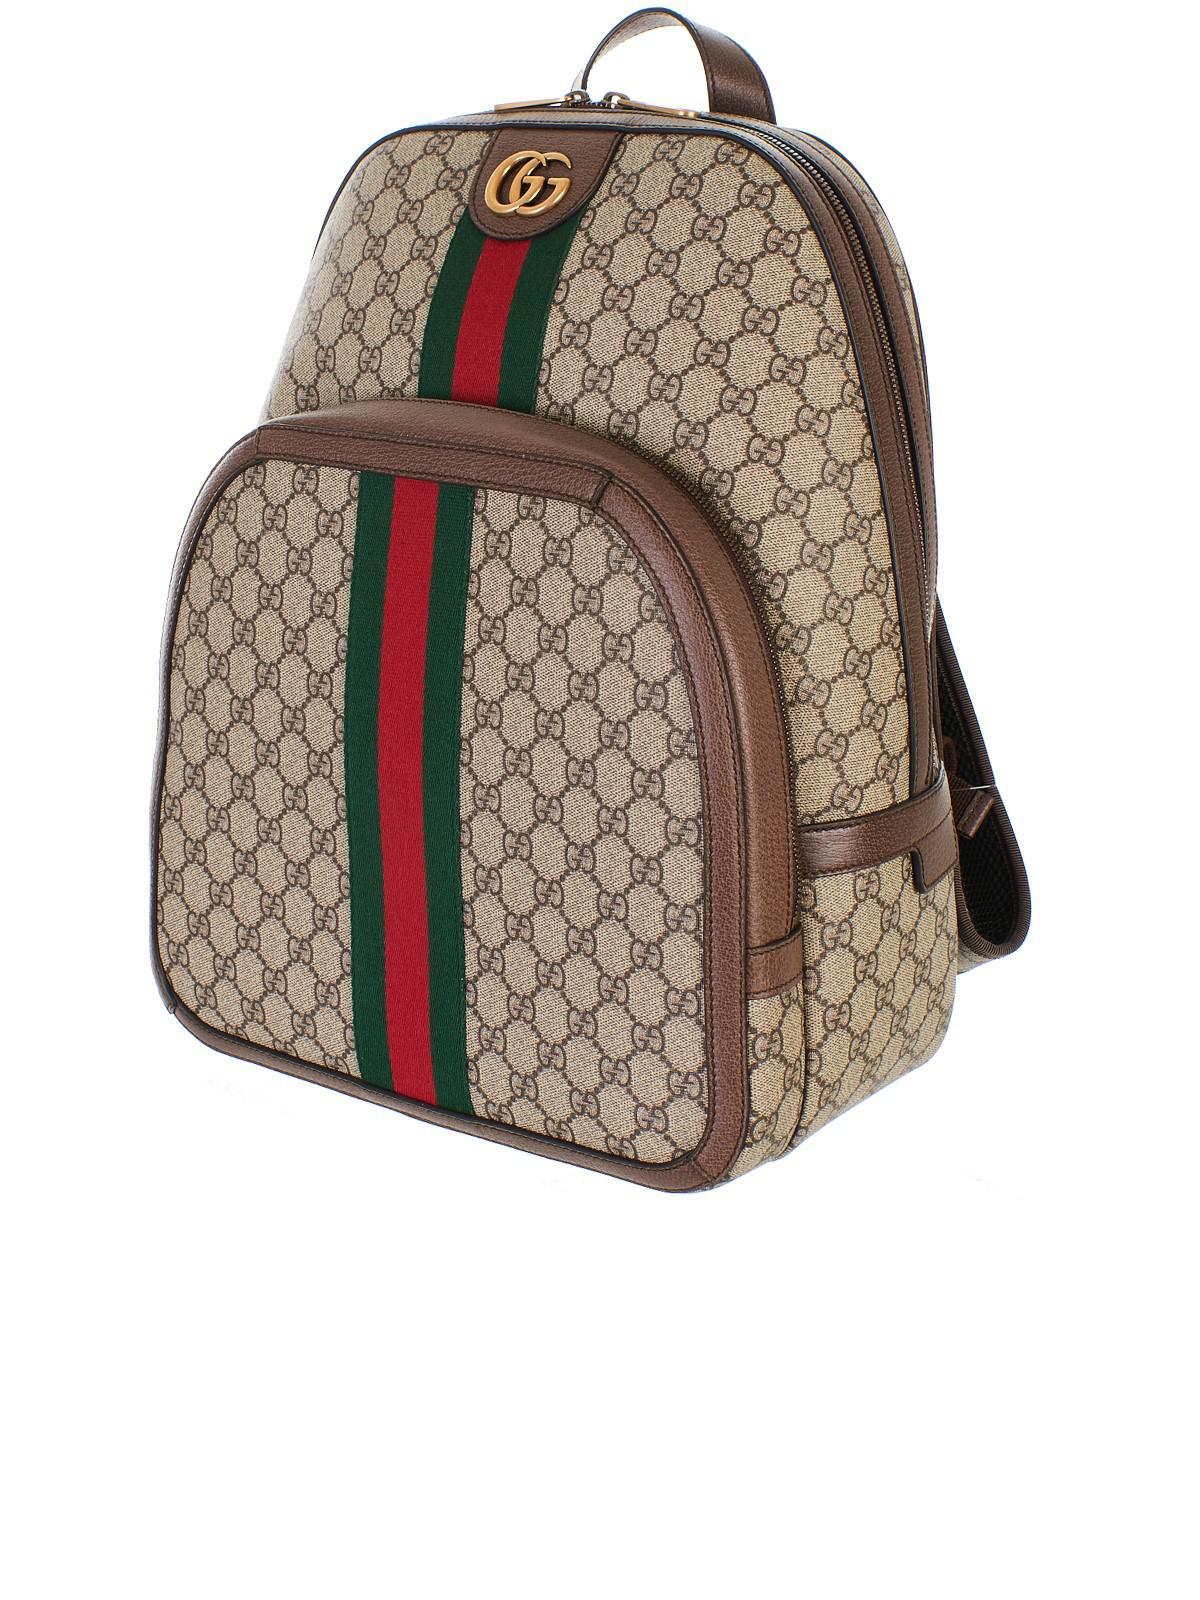 6d881ee81a1 Gucci - Natural Beige GG Supreme Backpack - Lyst. View fullscreen